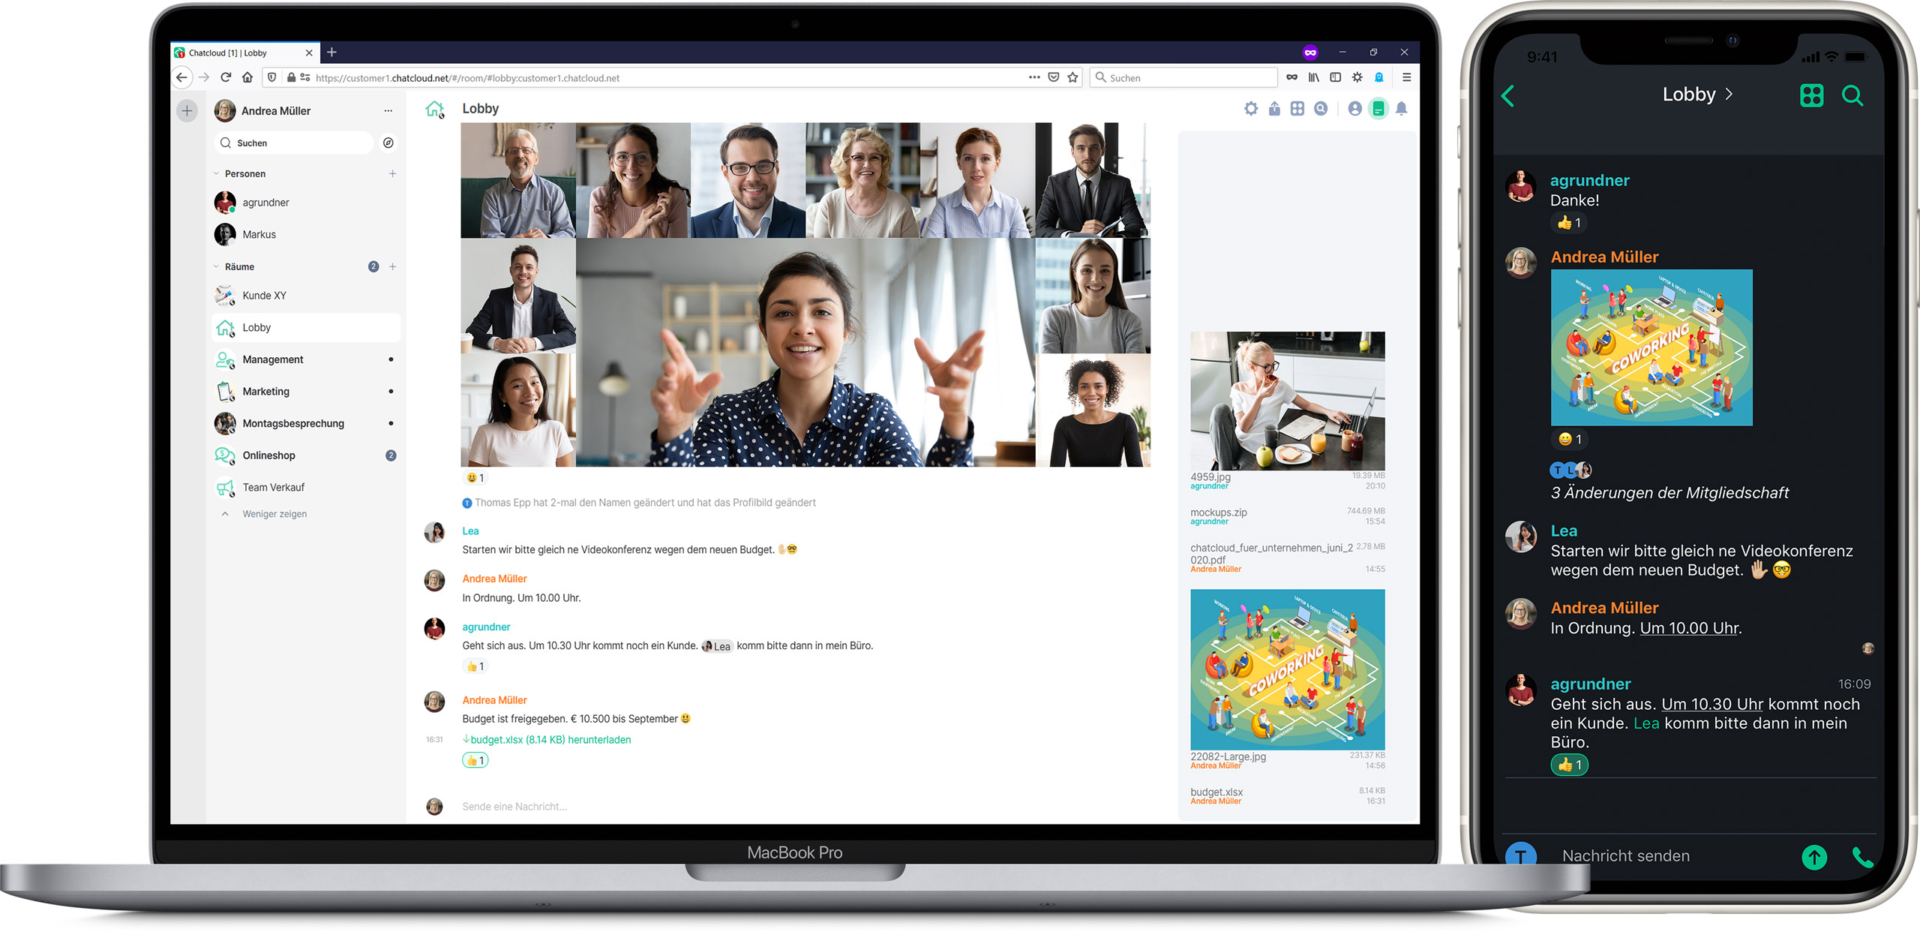 Chatcloud is a free online video chat